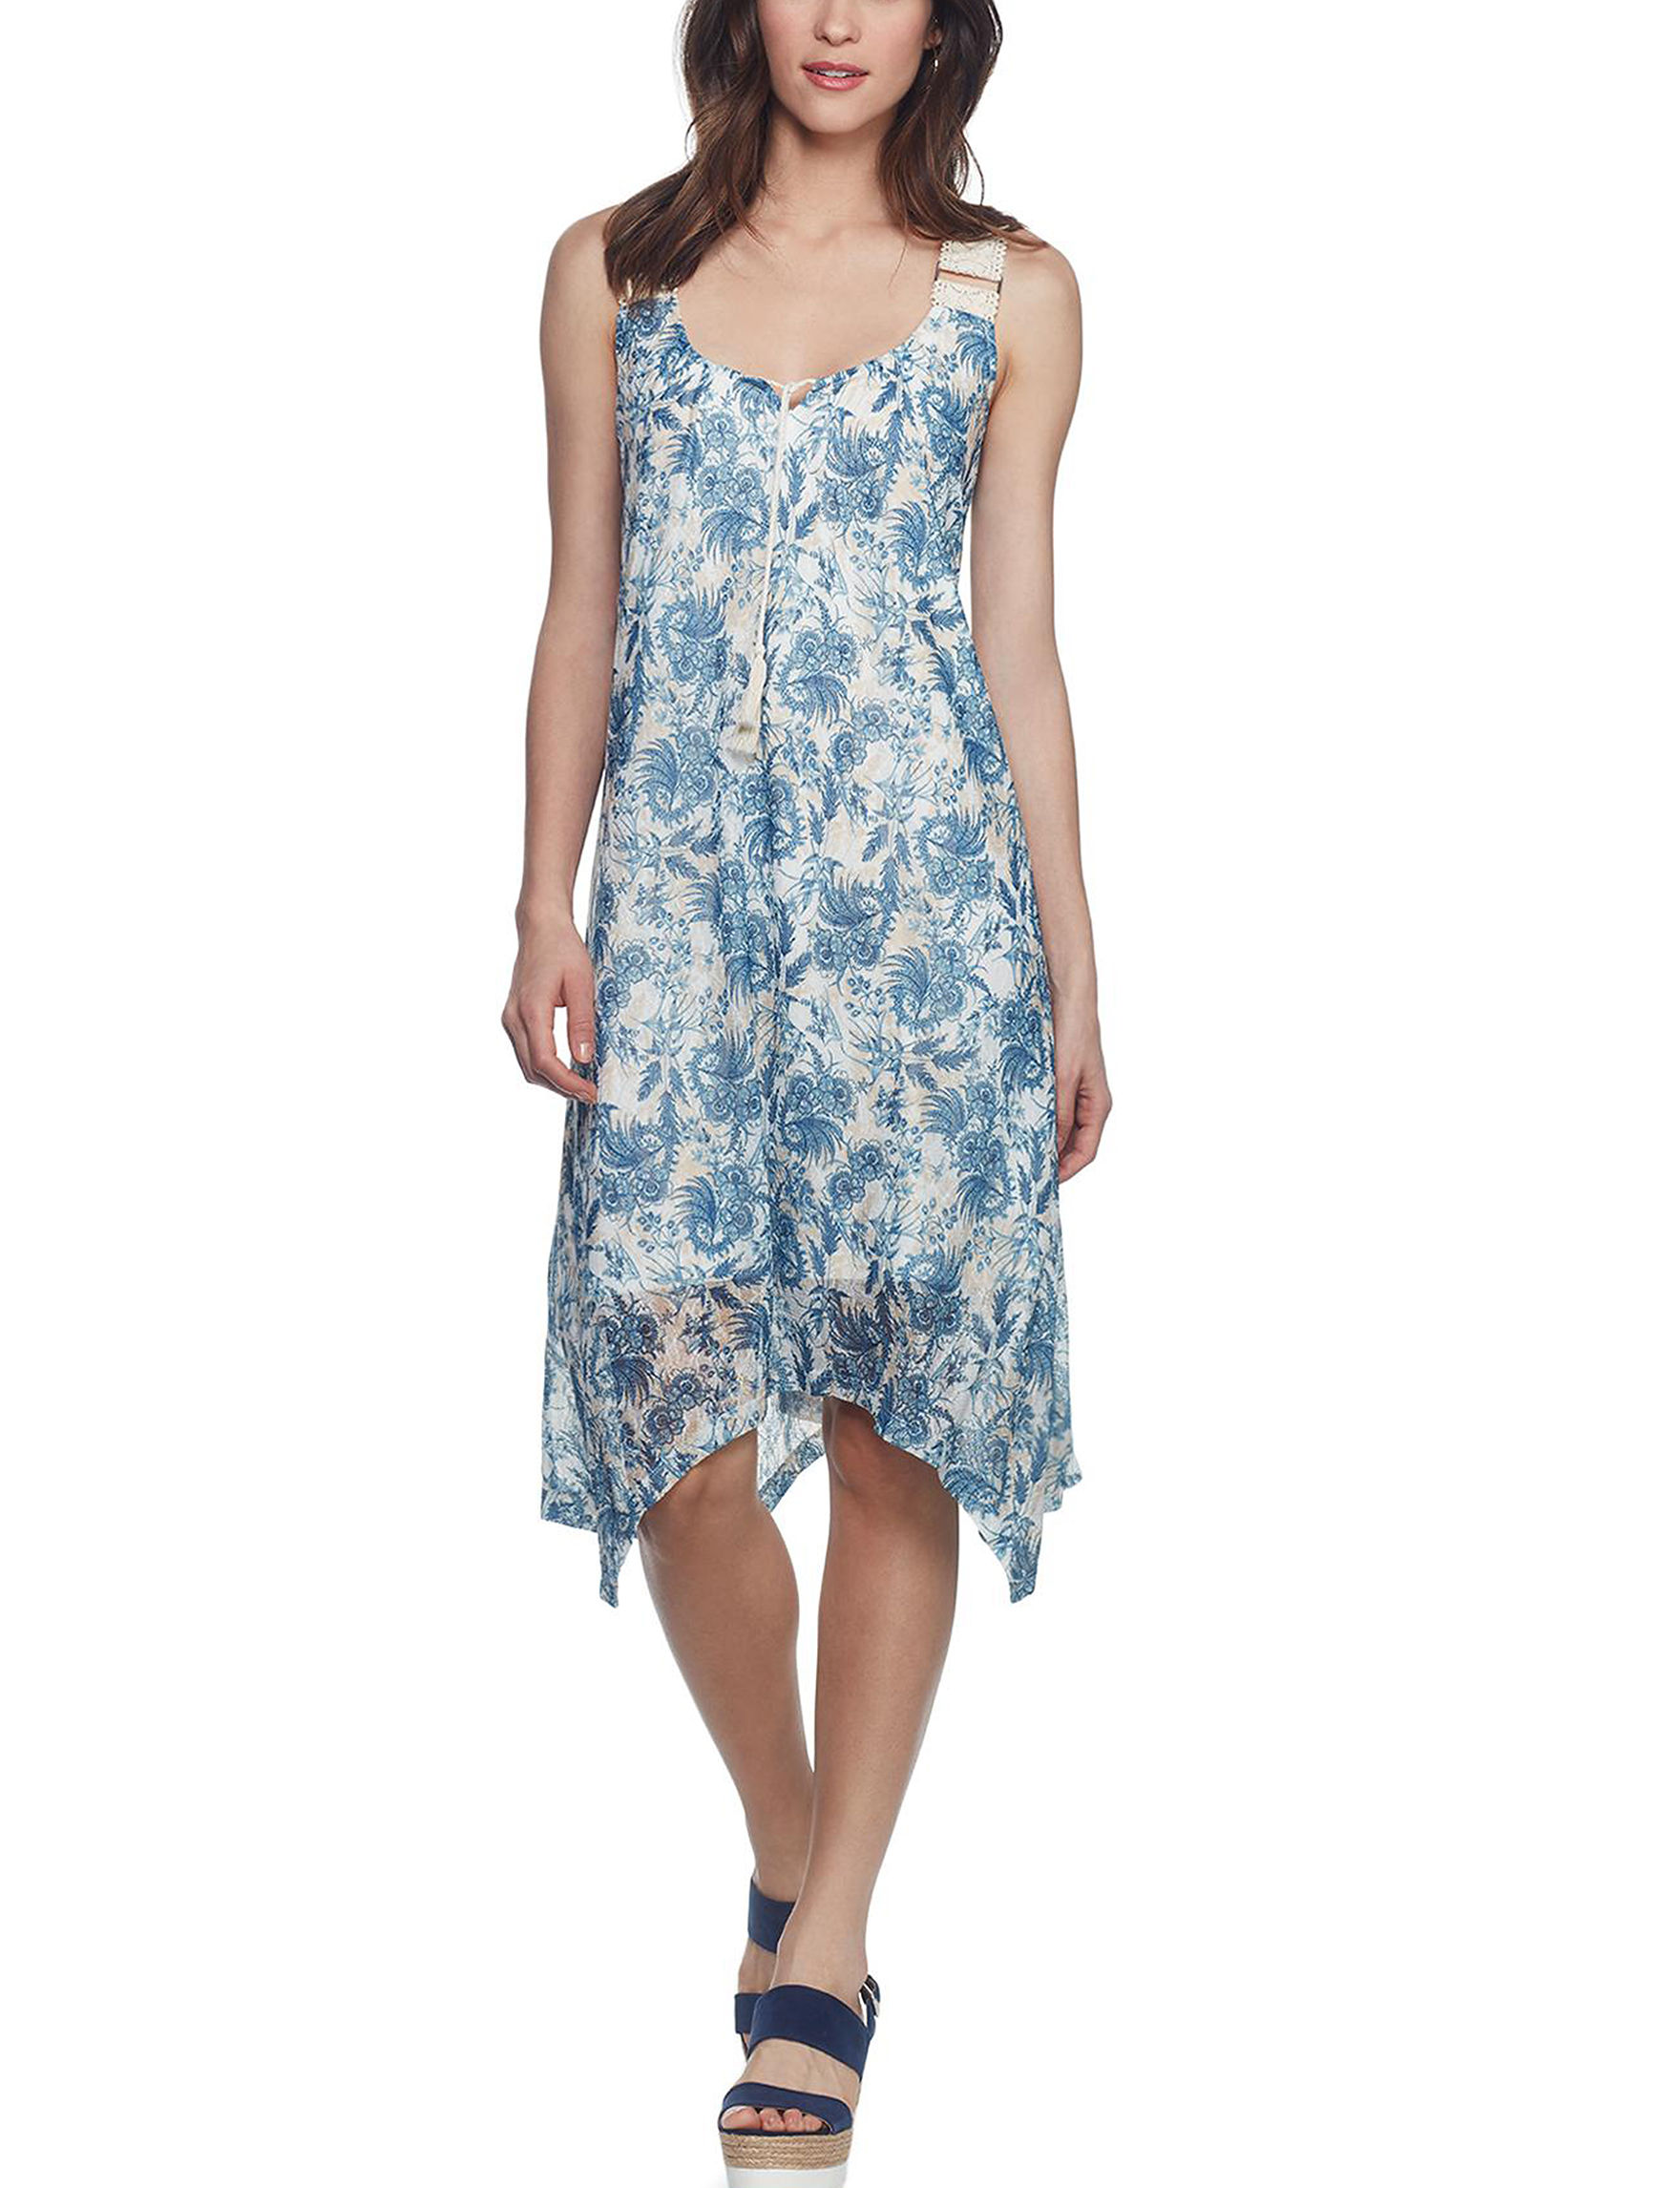 Skyes The Limit Navy Multi Everyday & Casual Sundresses